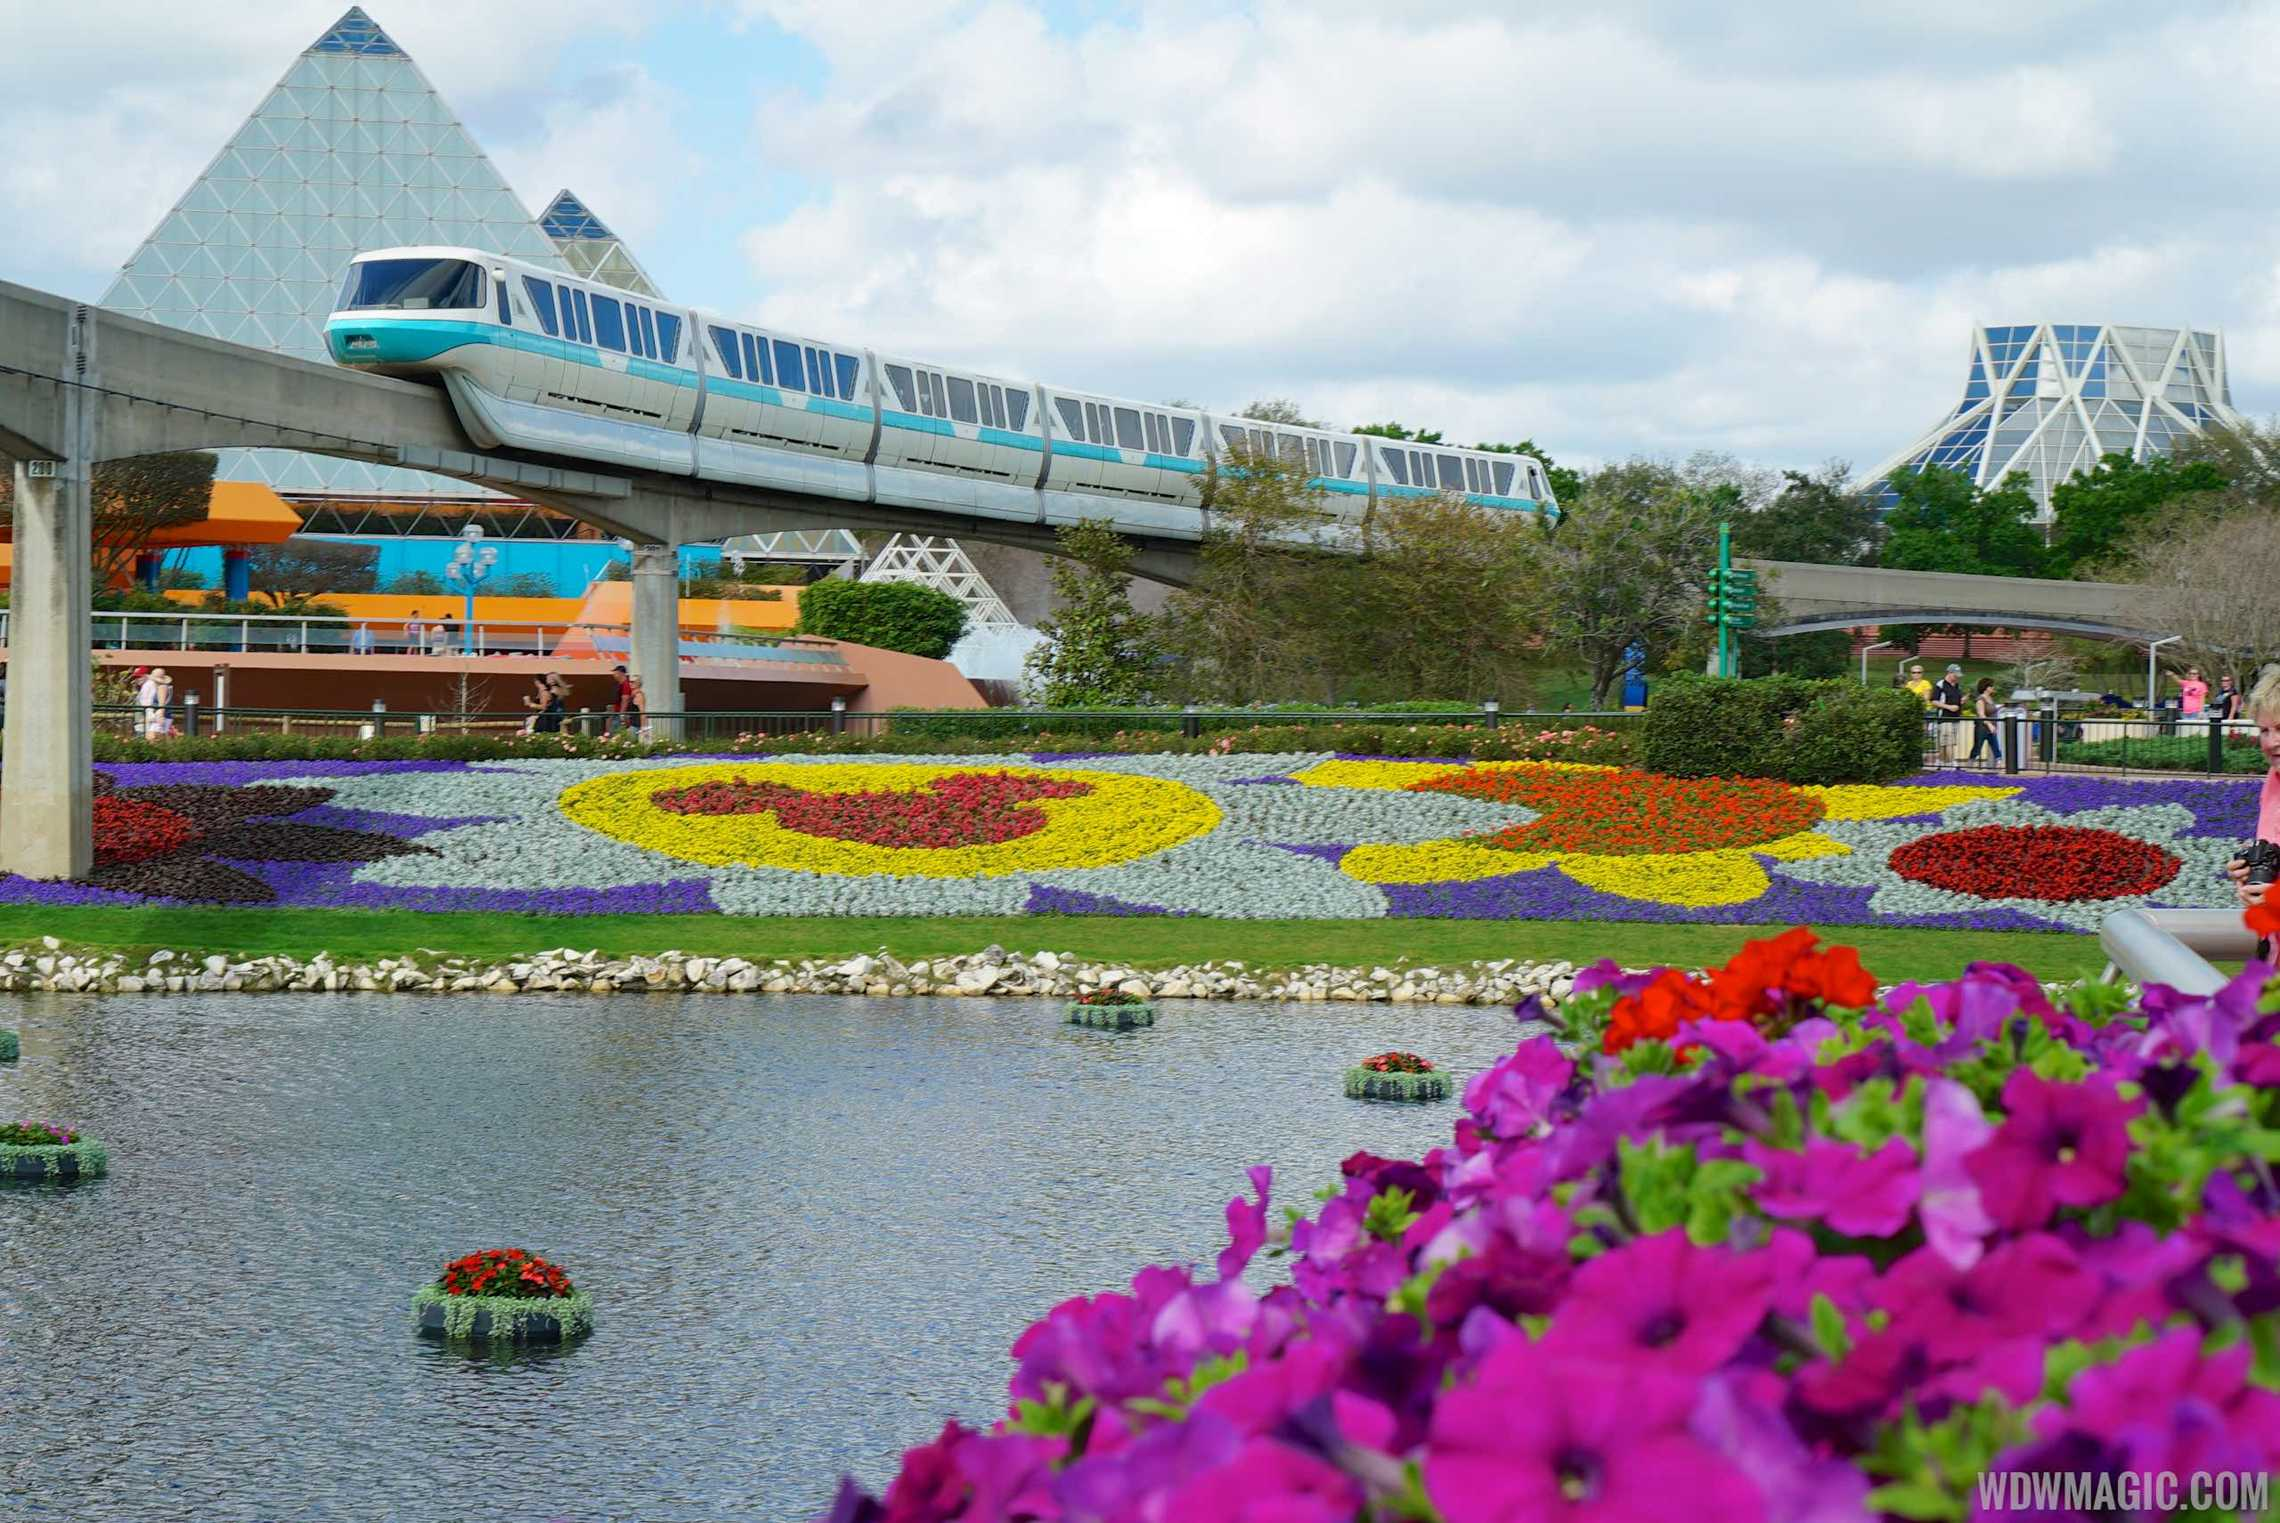 2015 Epcot Flower and Garden Festival - Monorail